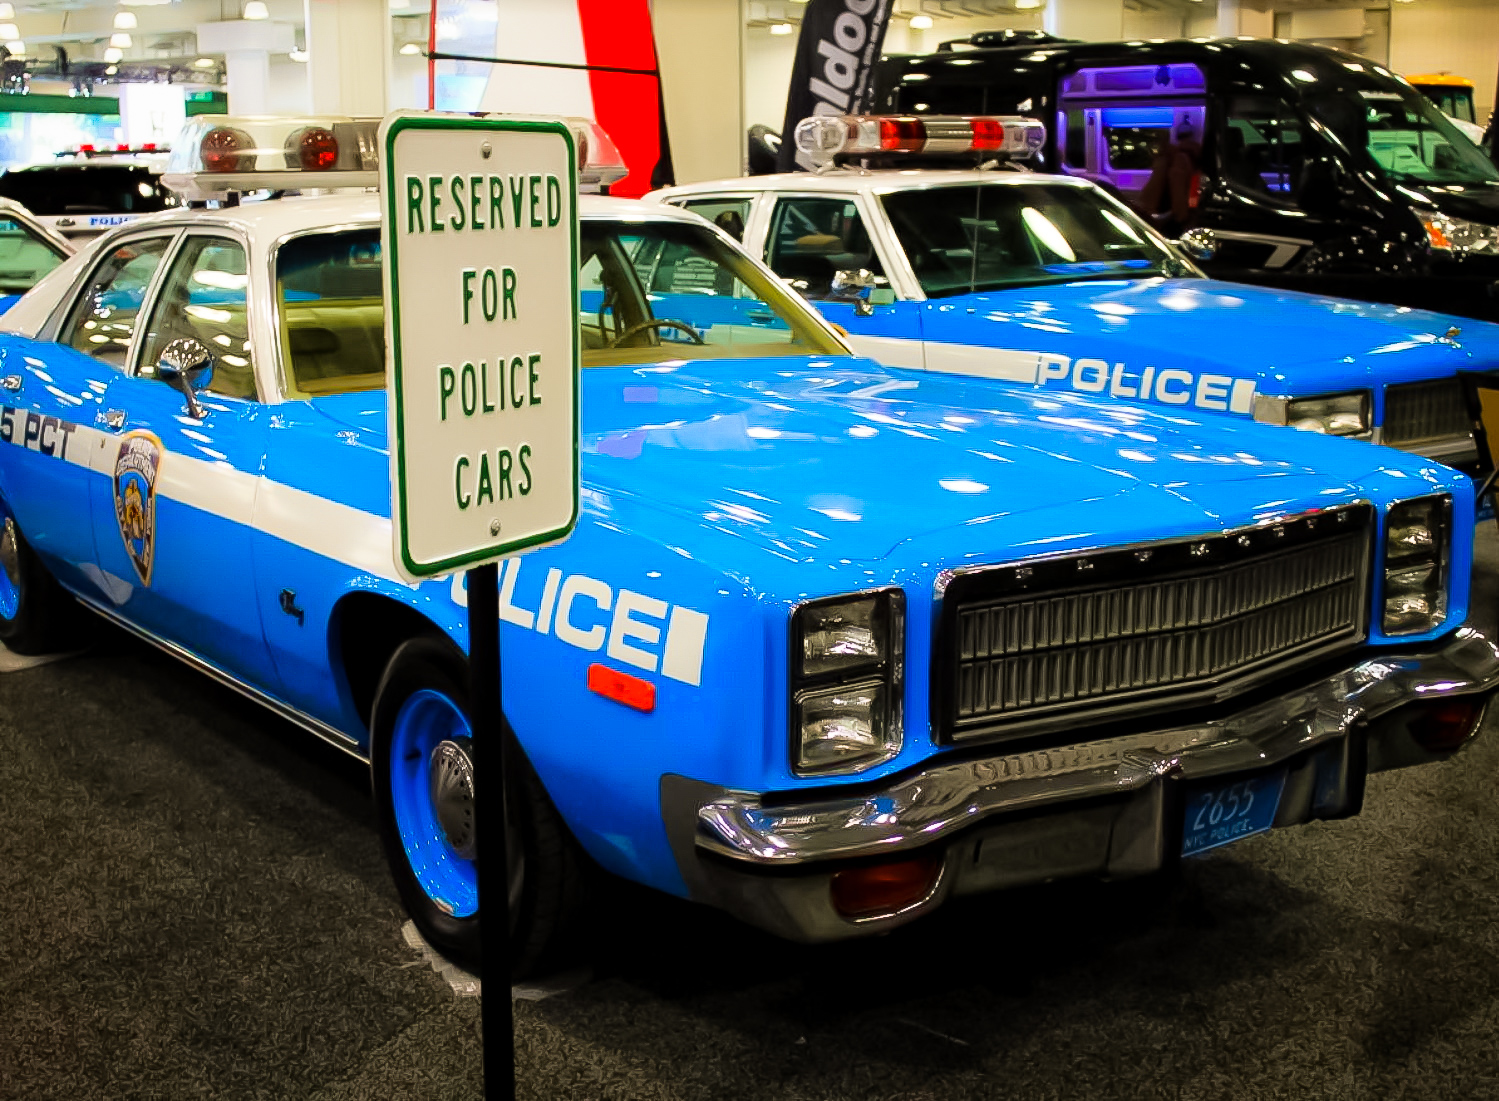 CHEVROLET CAPRICE – While not the most high profile part of the 2016 New York Auto Show, the classic cars at the NYPD display allow visitors to feel like they're traveling through time.